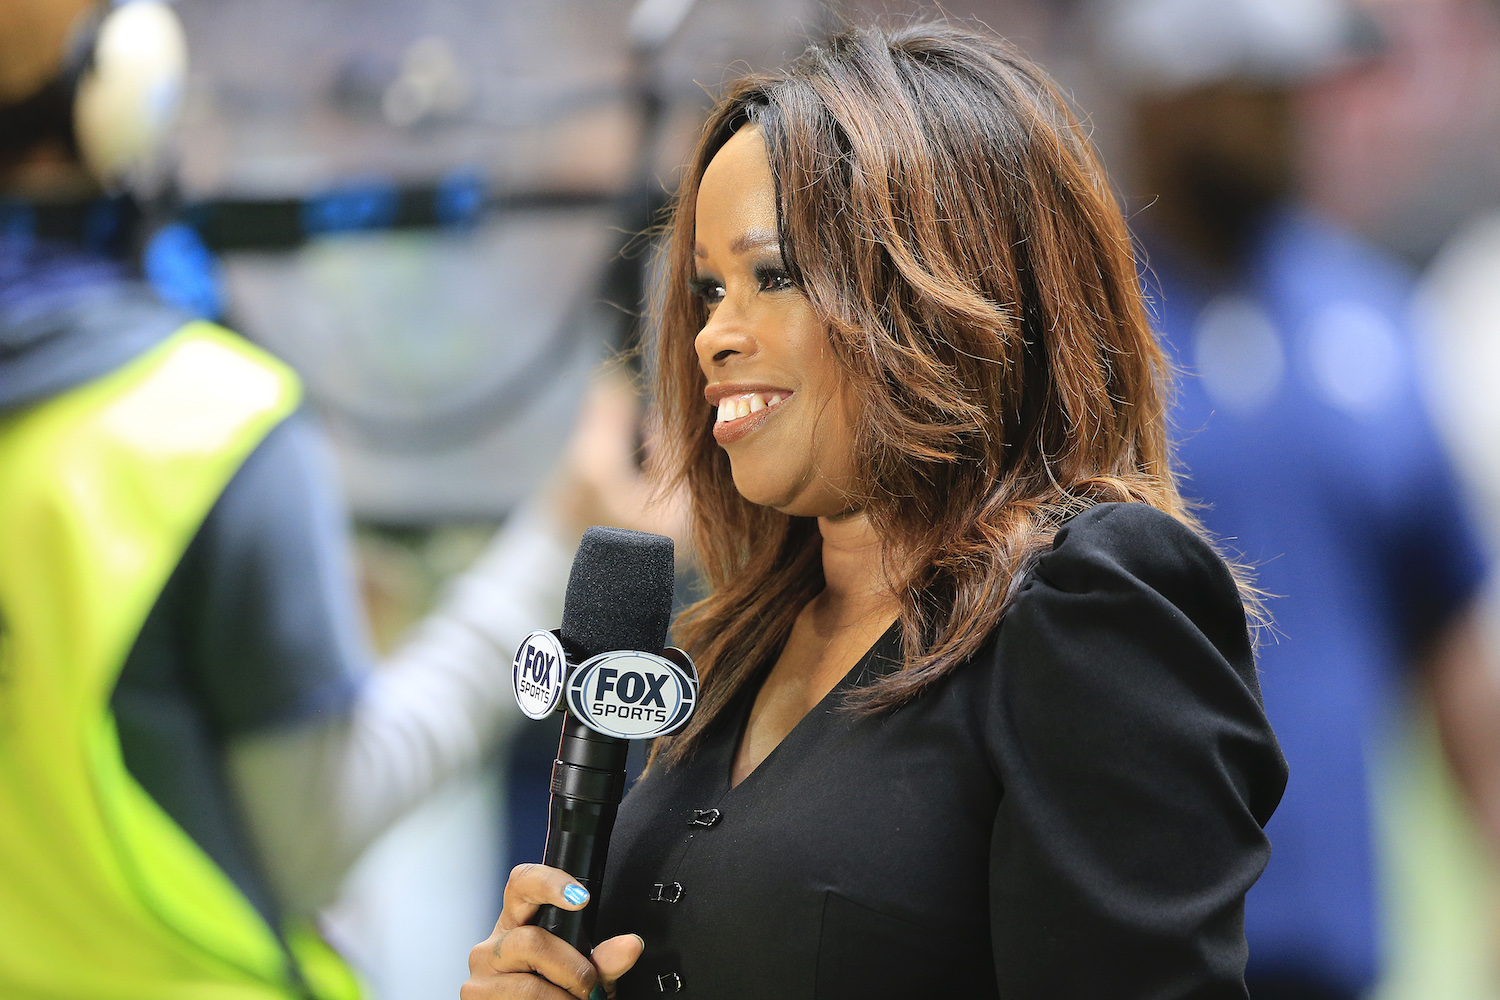 Fox Sports sideline reporter Pam Oliver